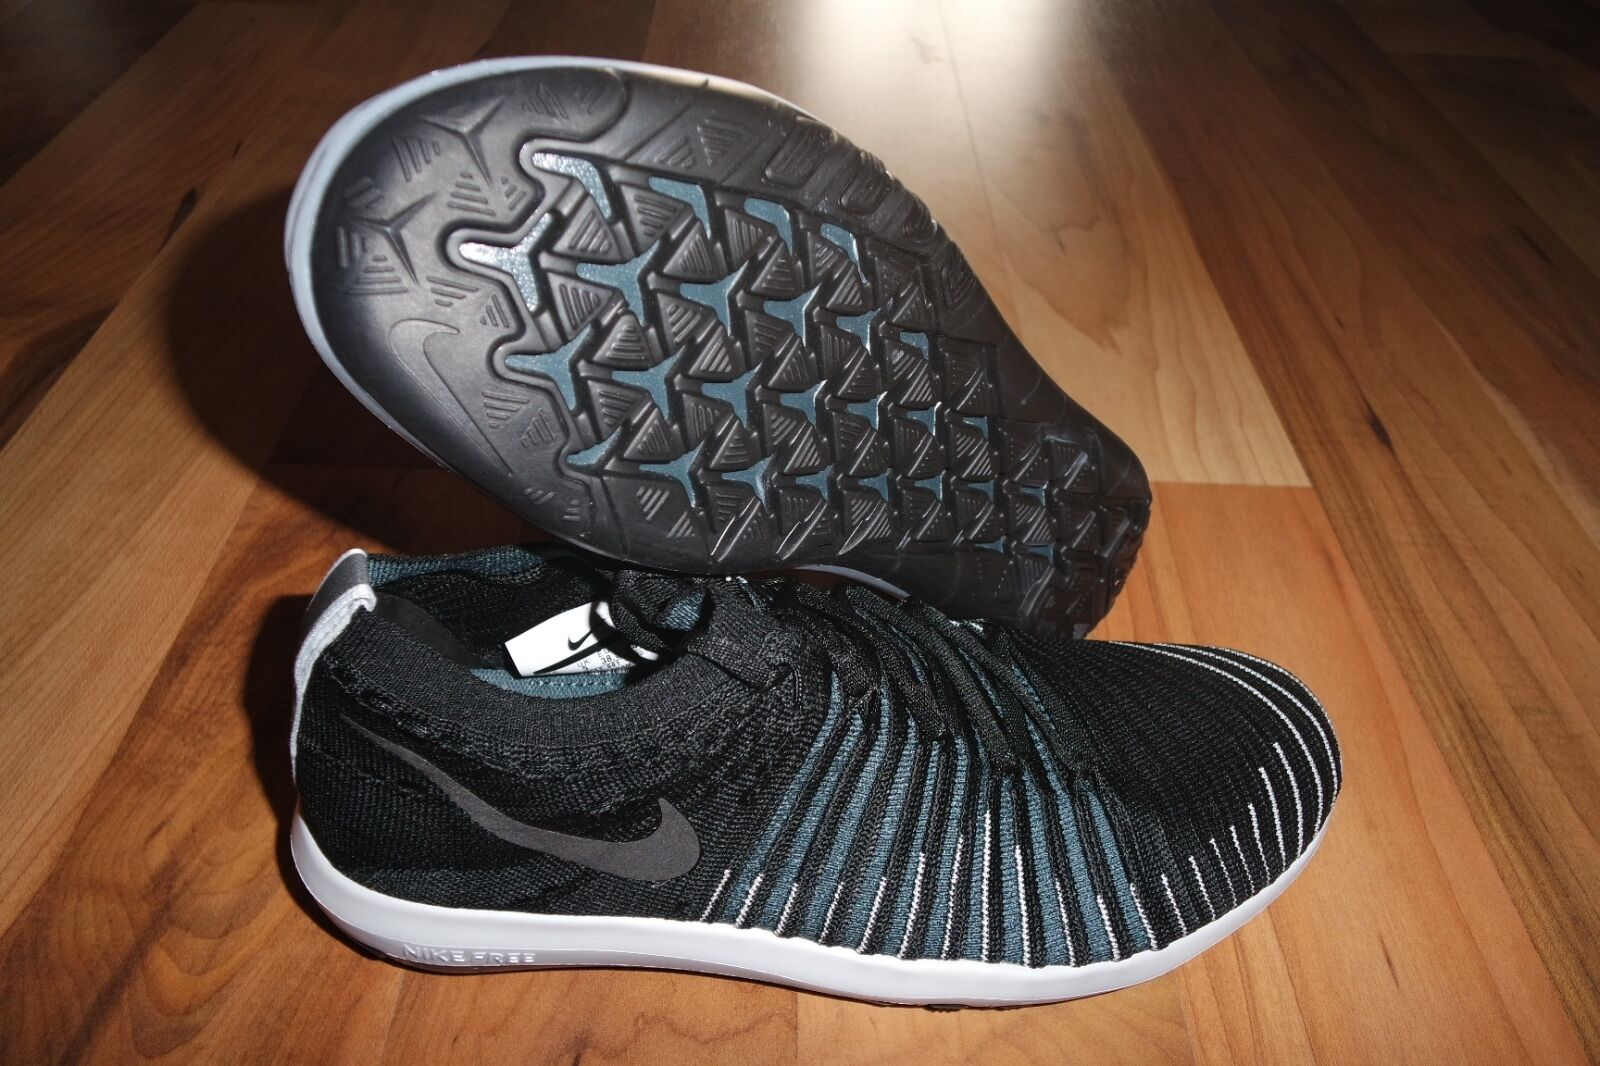 WMNS NIKELAB FREE TRANSFORM FLYKNIT 878552 001 RUNNING TRAINING SHOES SHOES SHOES US 7.5 bf6030